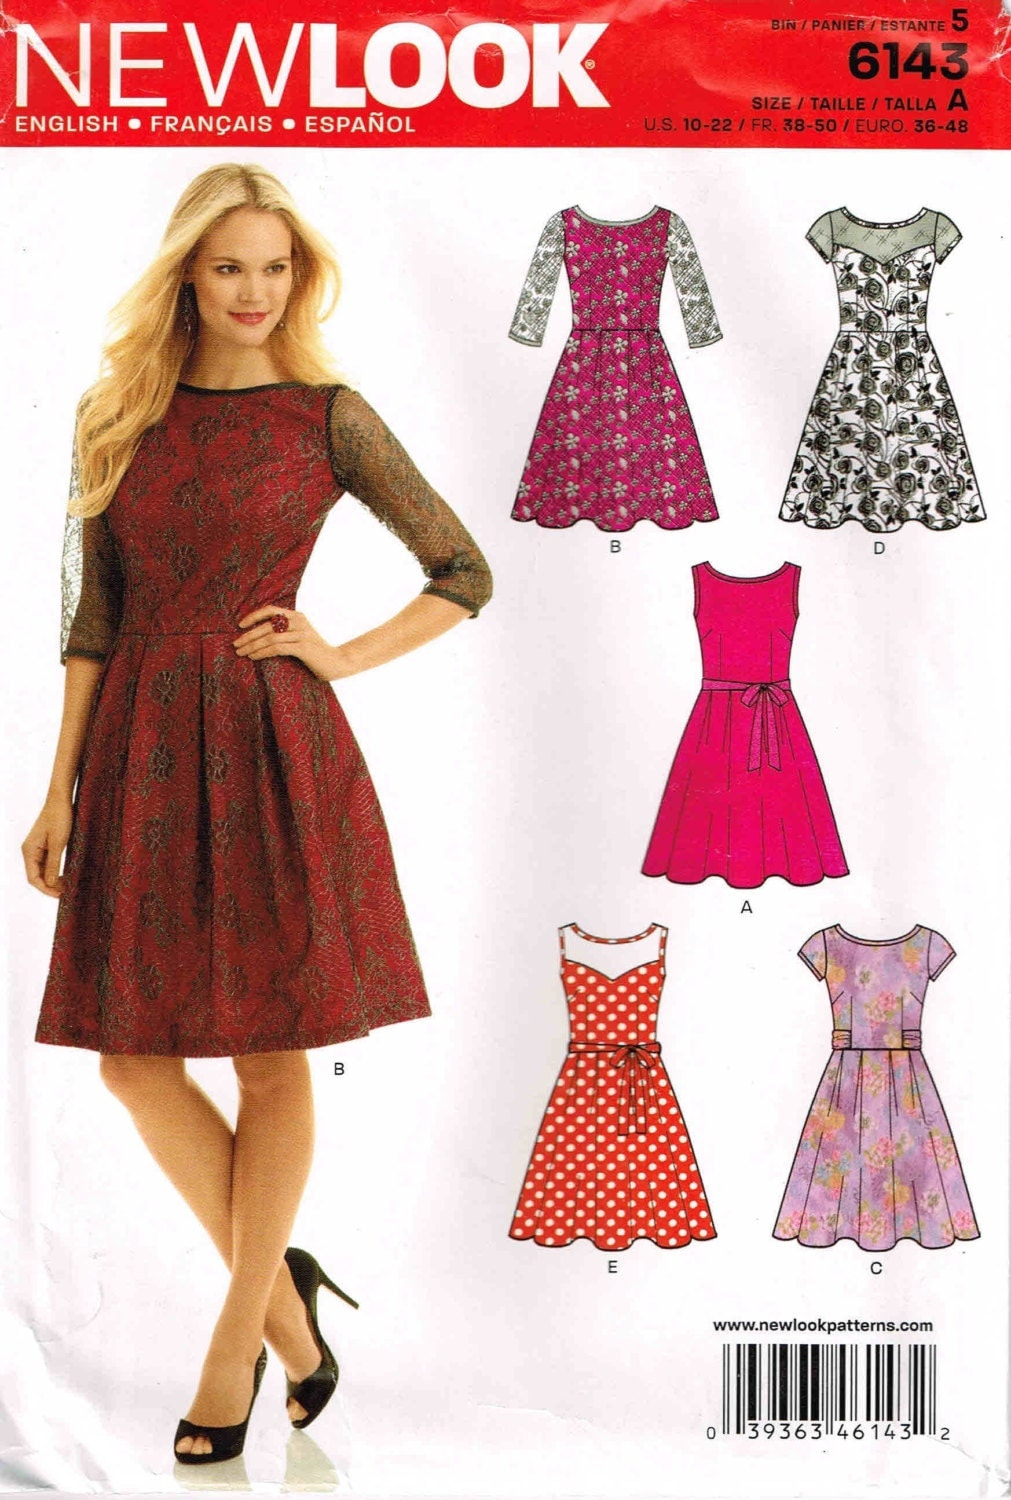 fitted dress pleated skirt new look 6143 sewing pattern size